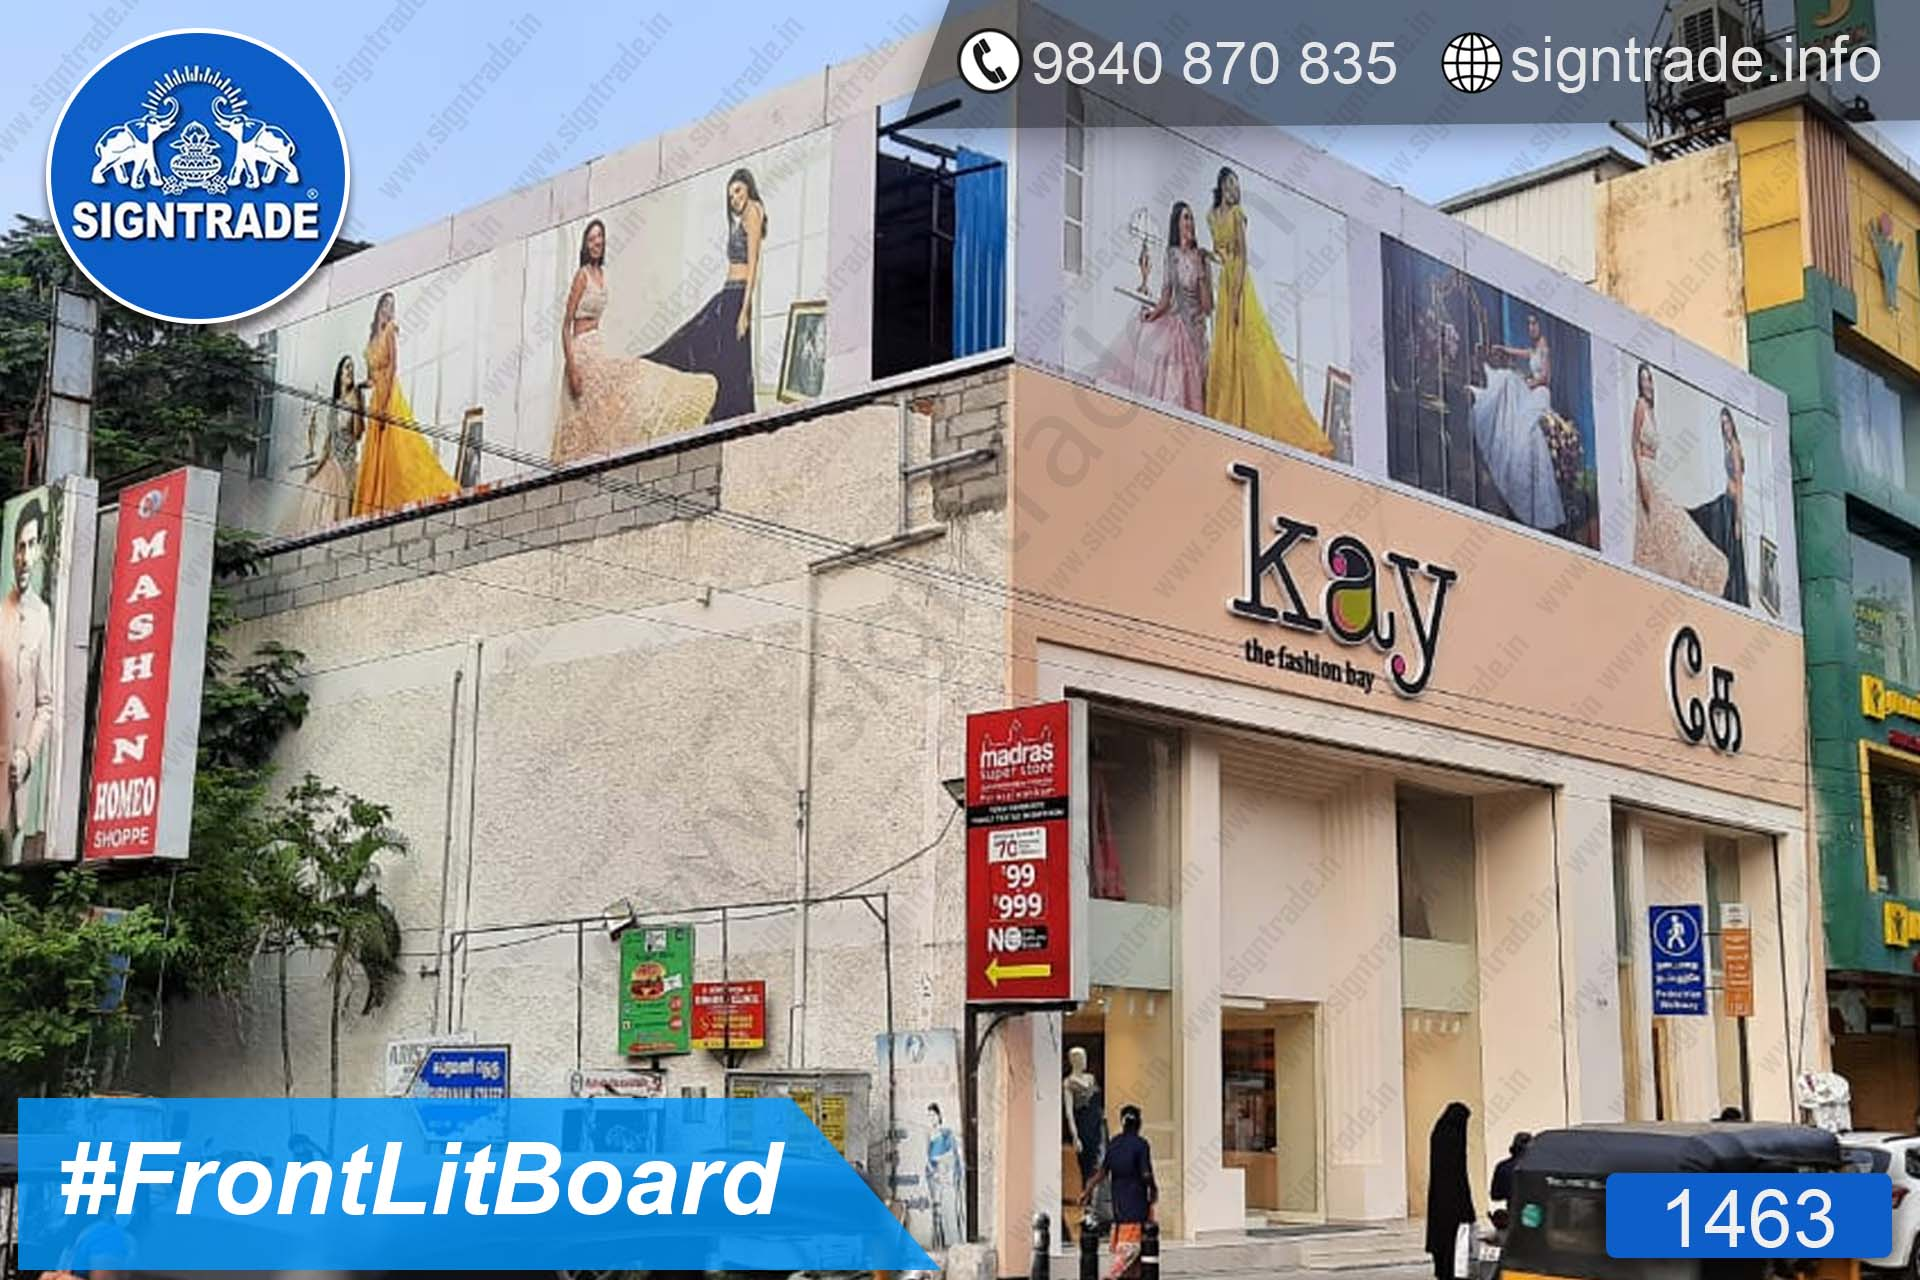 kay the fashion bay - 1463, Flex Board, Frontlit Flex Board, Star Frontlit Flex Board, Frontlit Flex Banners, Shop Front Flex Board, Shop Flex Board, Star Flex